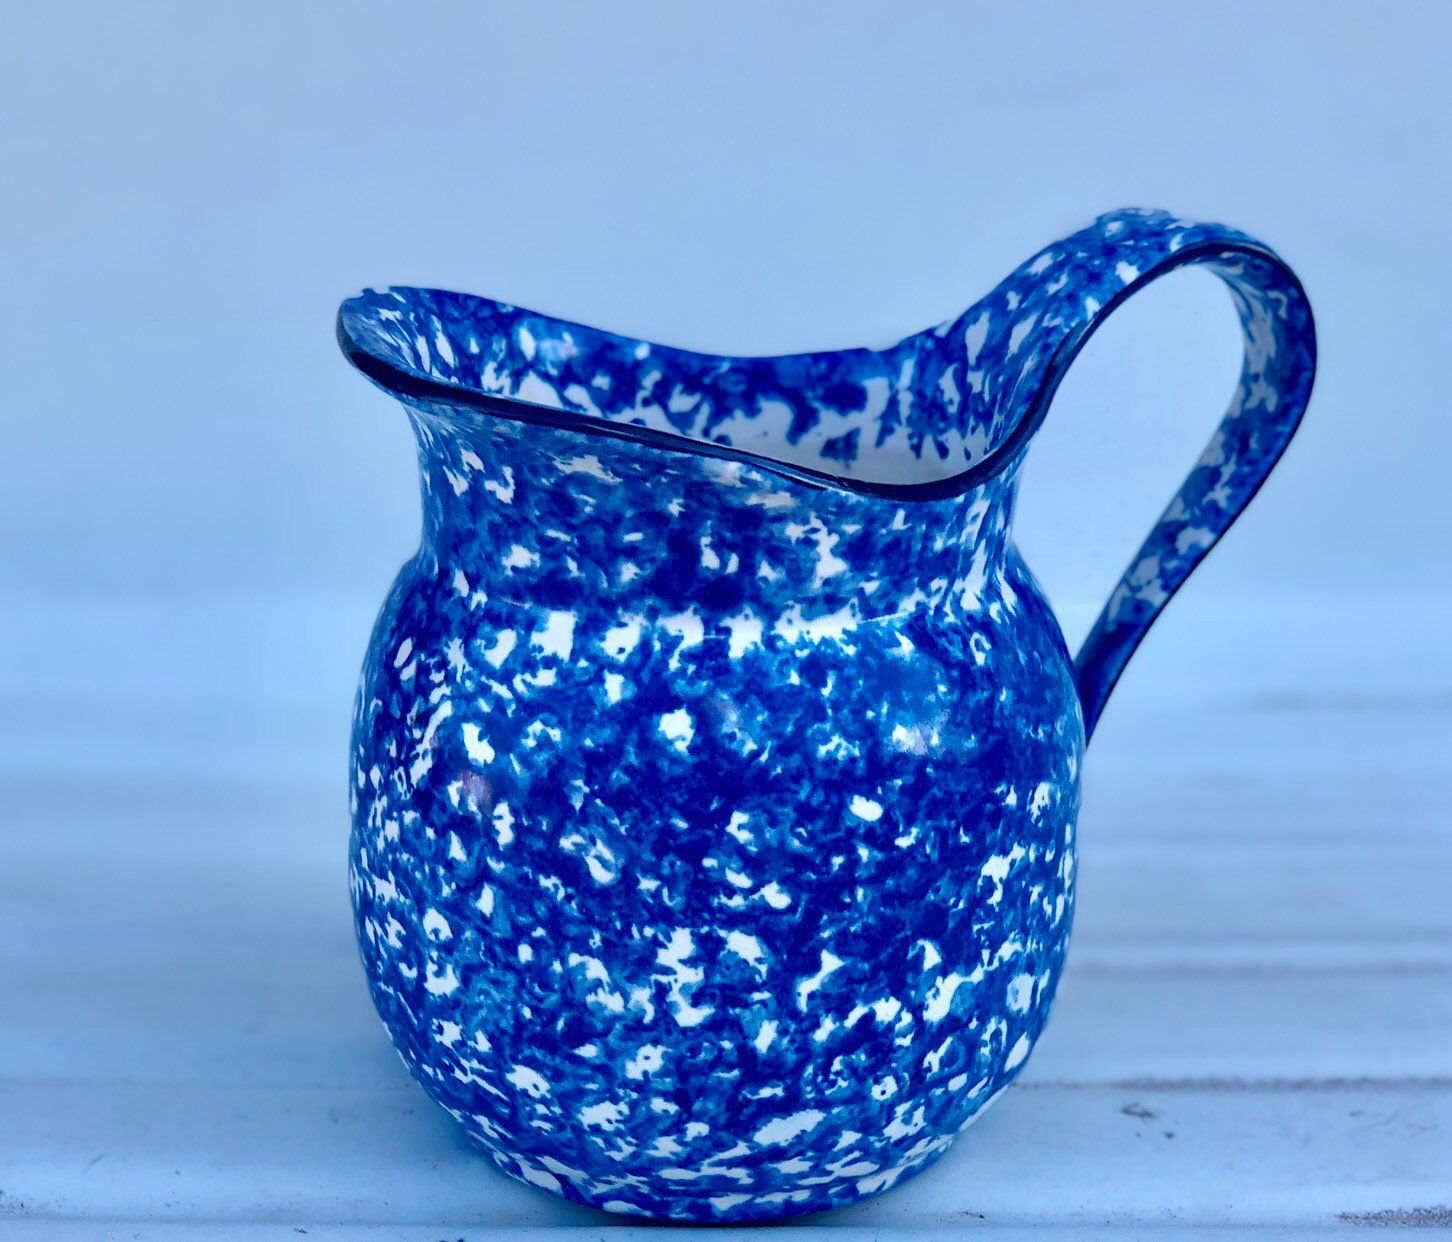 Stangl Pottery, Blue Spongeware Pitcher, Town and Country